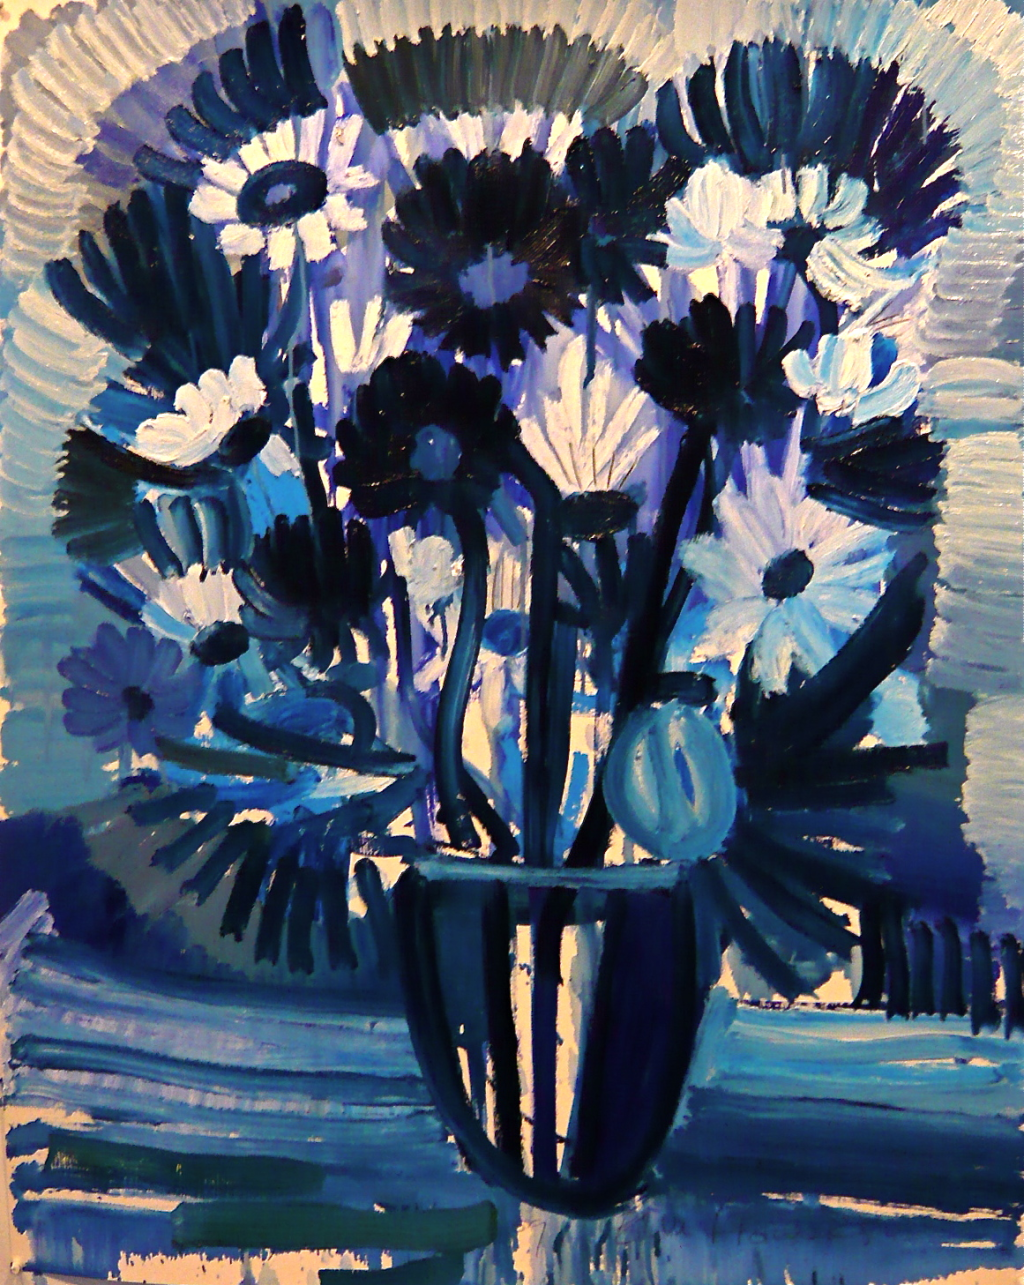 Untitled (Blue flowers) Gerben Mulder